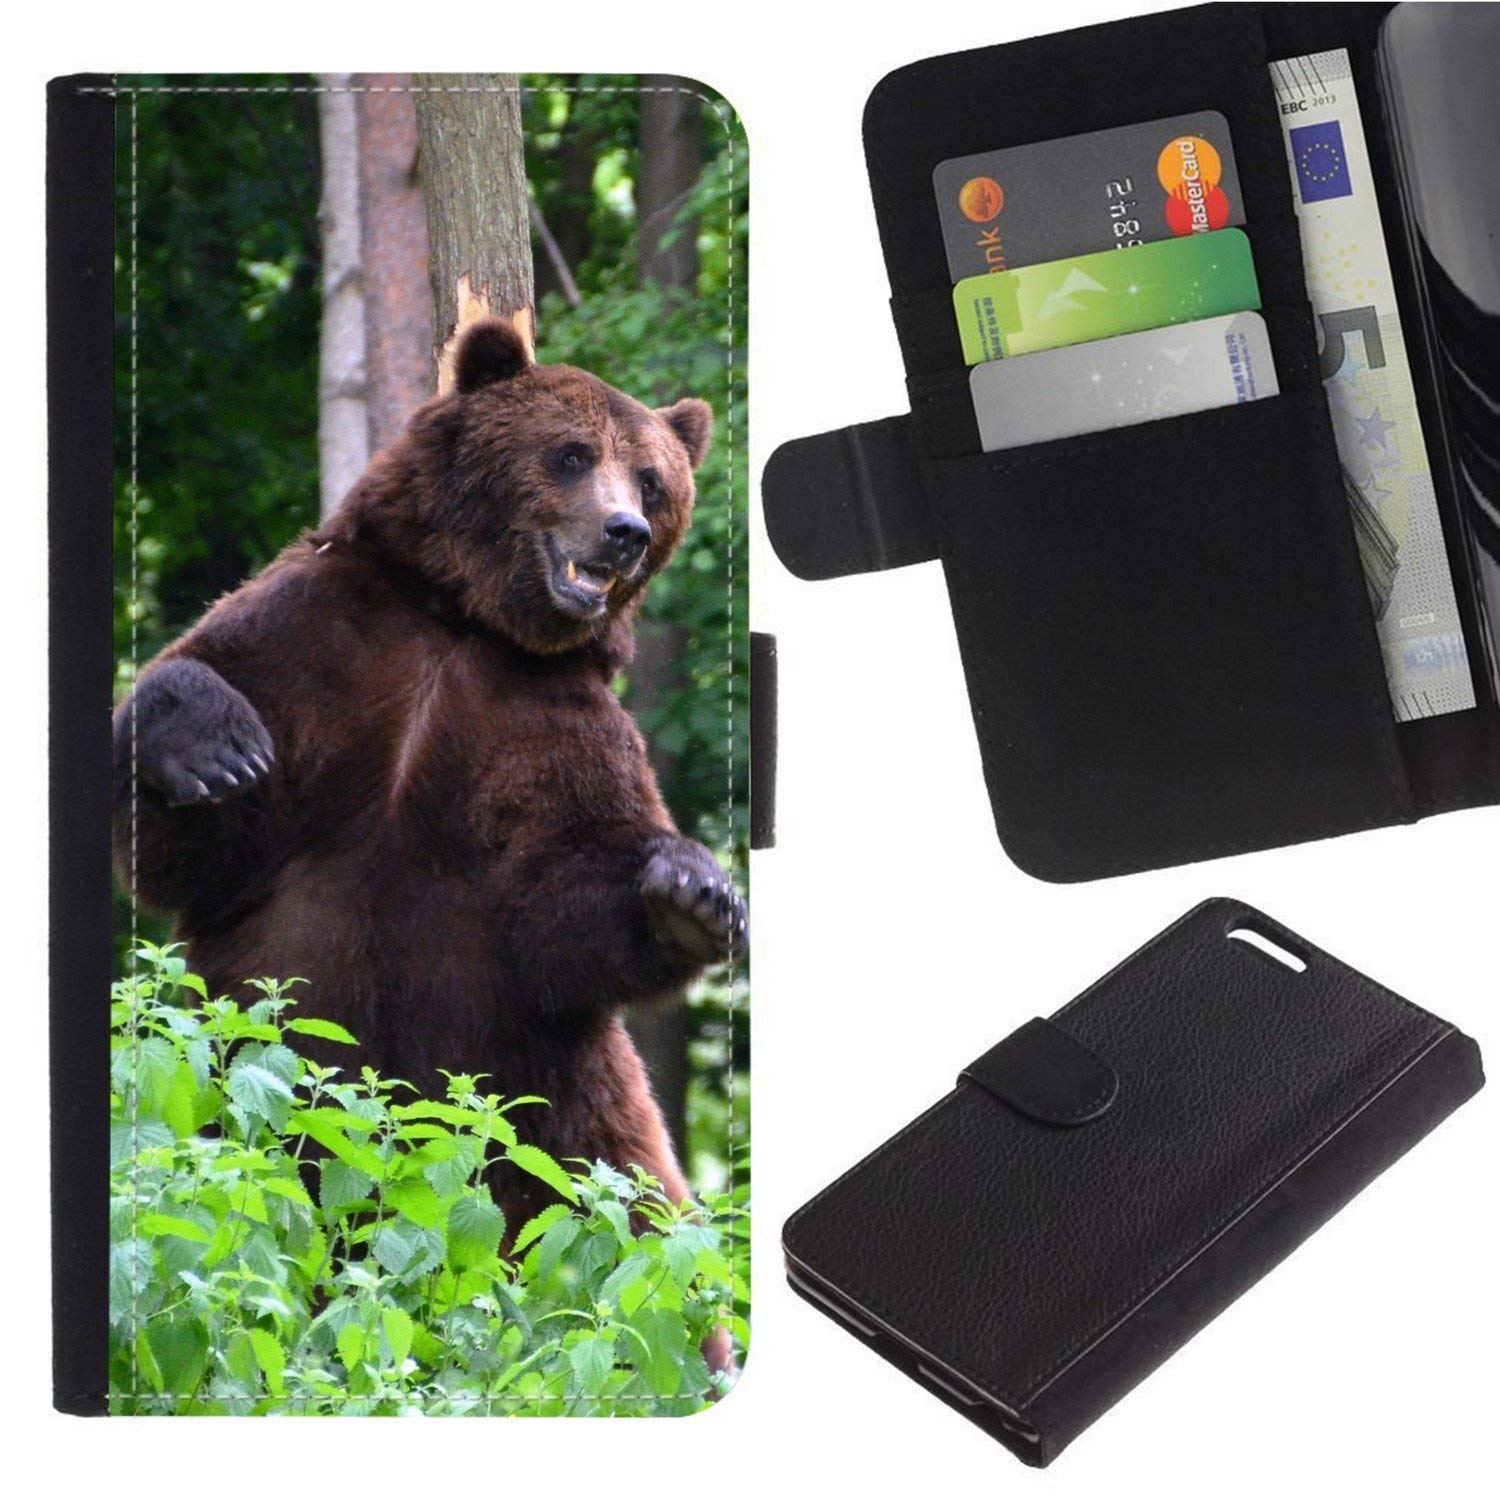 [Brown Bear/Grizzly] For Moto E5 Play/Moto E5 Cruise, Flip Leather Wallet Holsters Pouch Skin Case